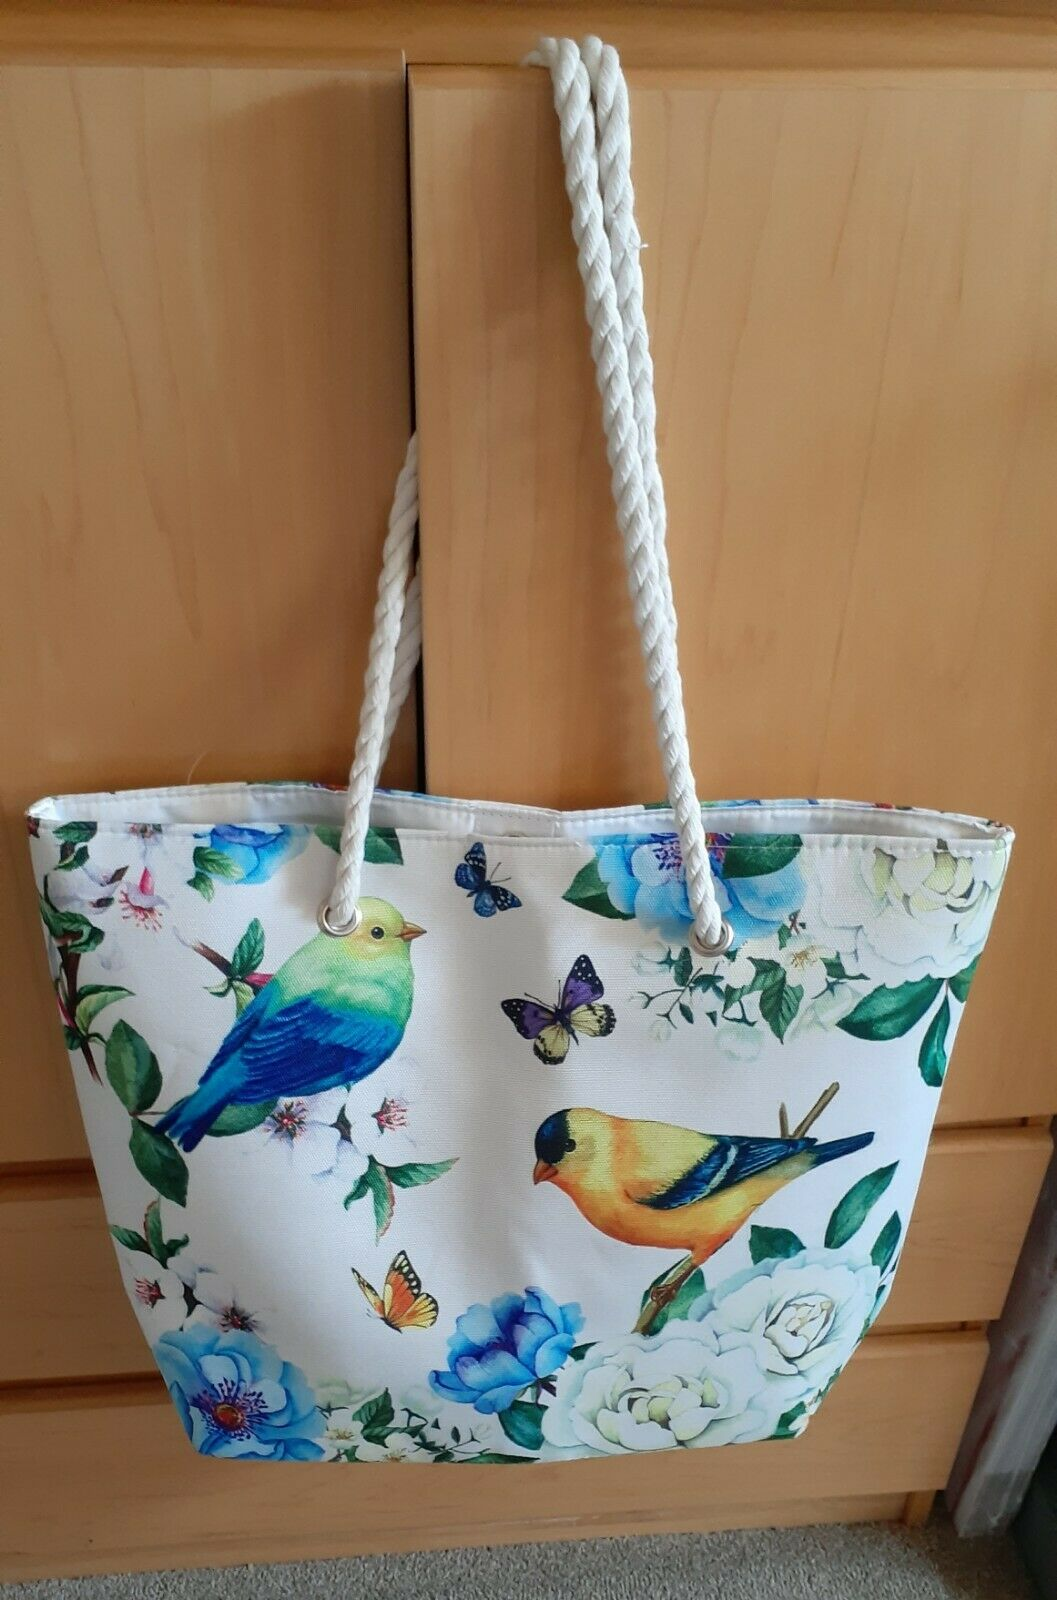 JUMBO XXL Tote Bag Birds Butterflies Canvas Lined Rope Straps 20